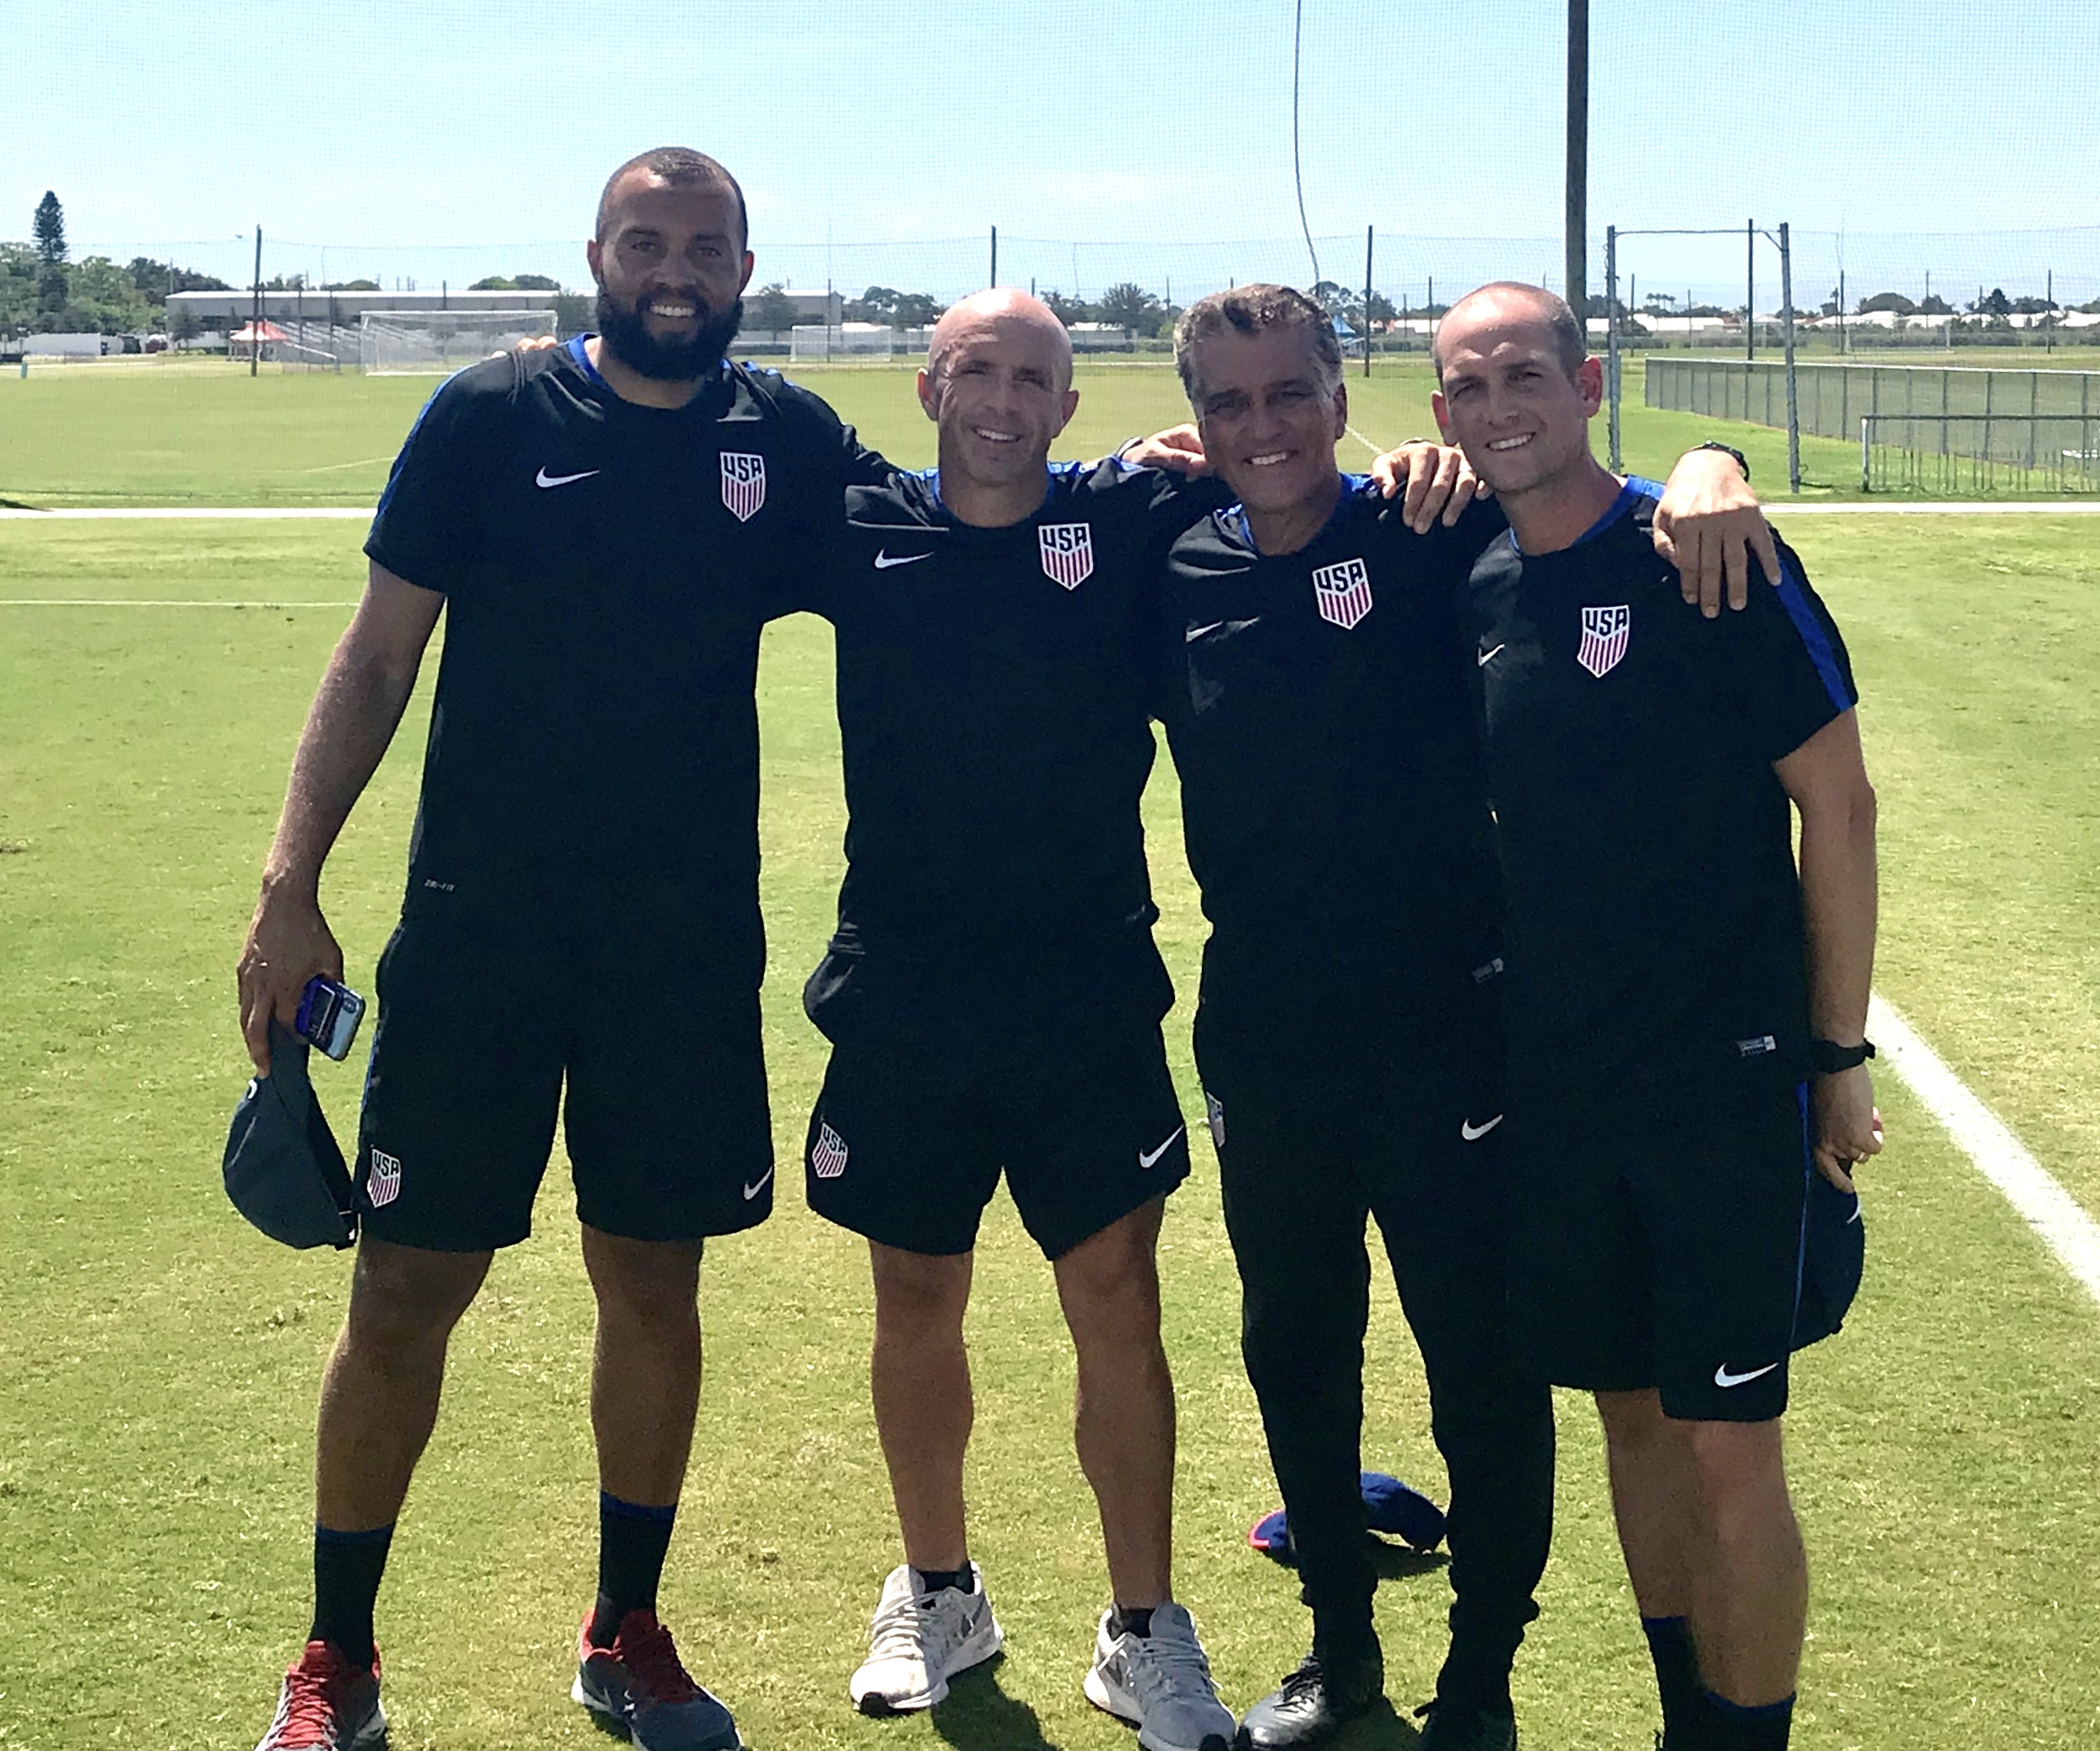 Just returned from the U16 Boys National Team camp at IMG. World Class facility! Pleasure to work with these quality coaches. This young generation of players has quality. The future is very promising.